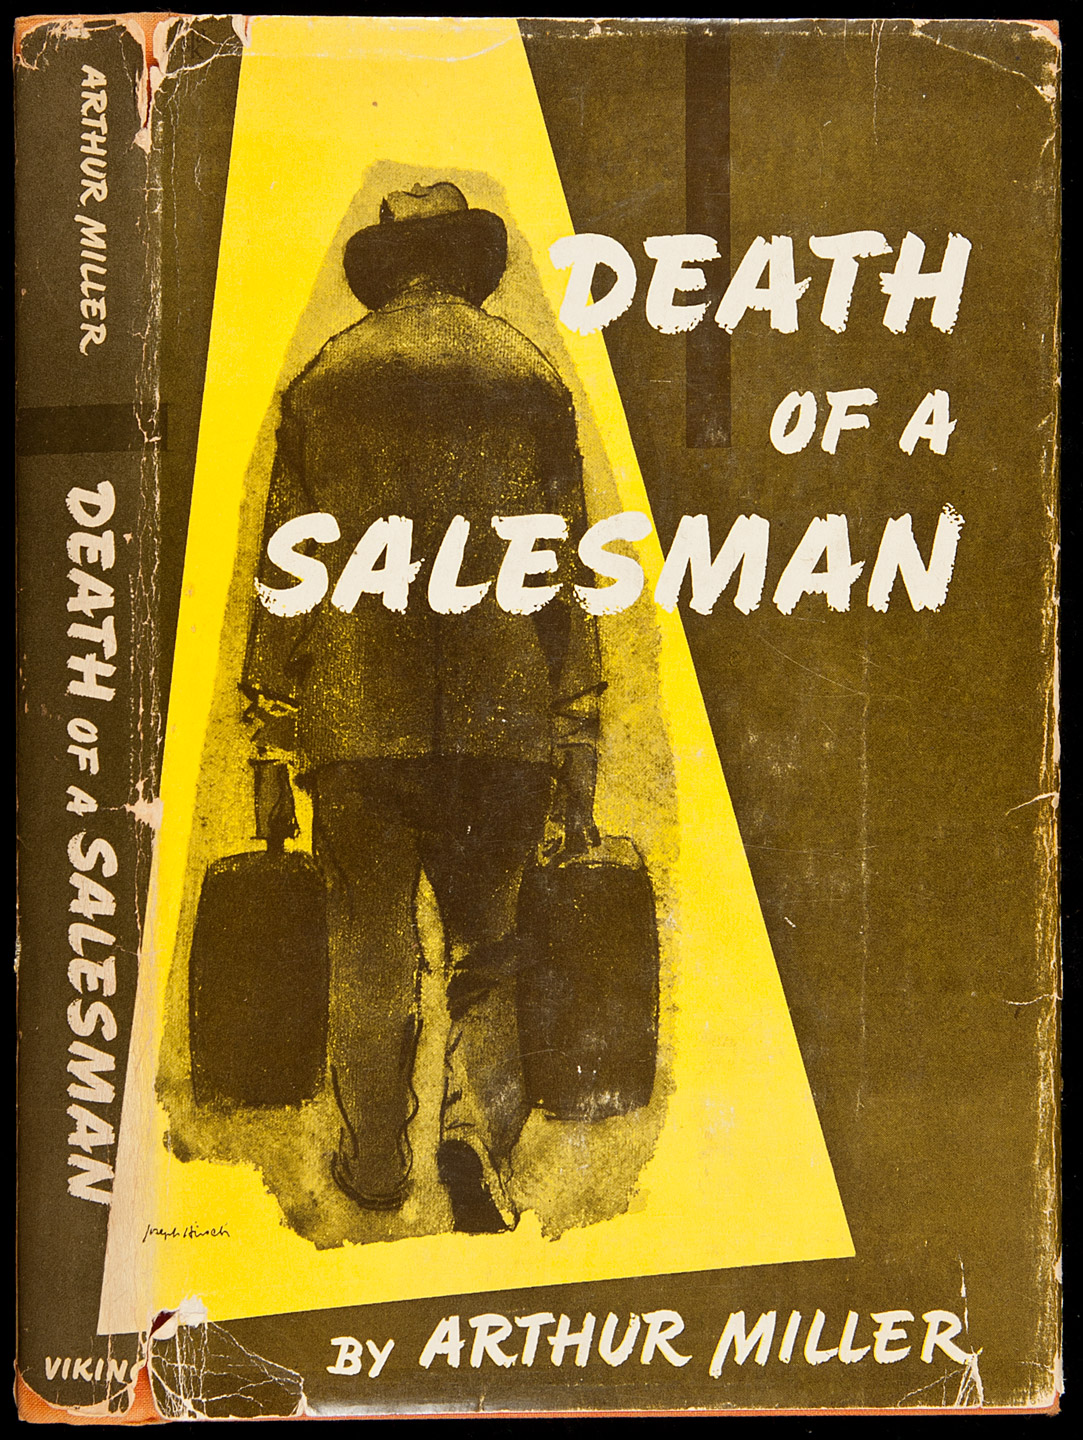 death of a salesman guilt Get an answer for 'in death of a salesman, what is the relationship between willy's guilt and the hallucinations and flashbacks he has' and find homework help for other death of a salesman questions at enotes.